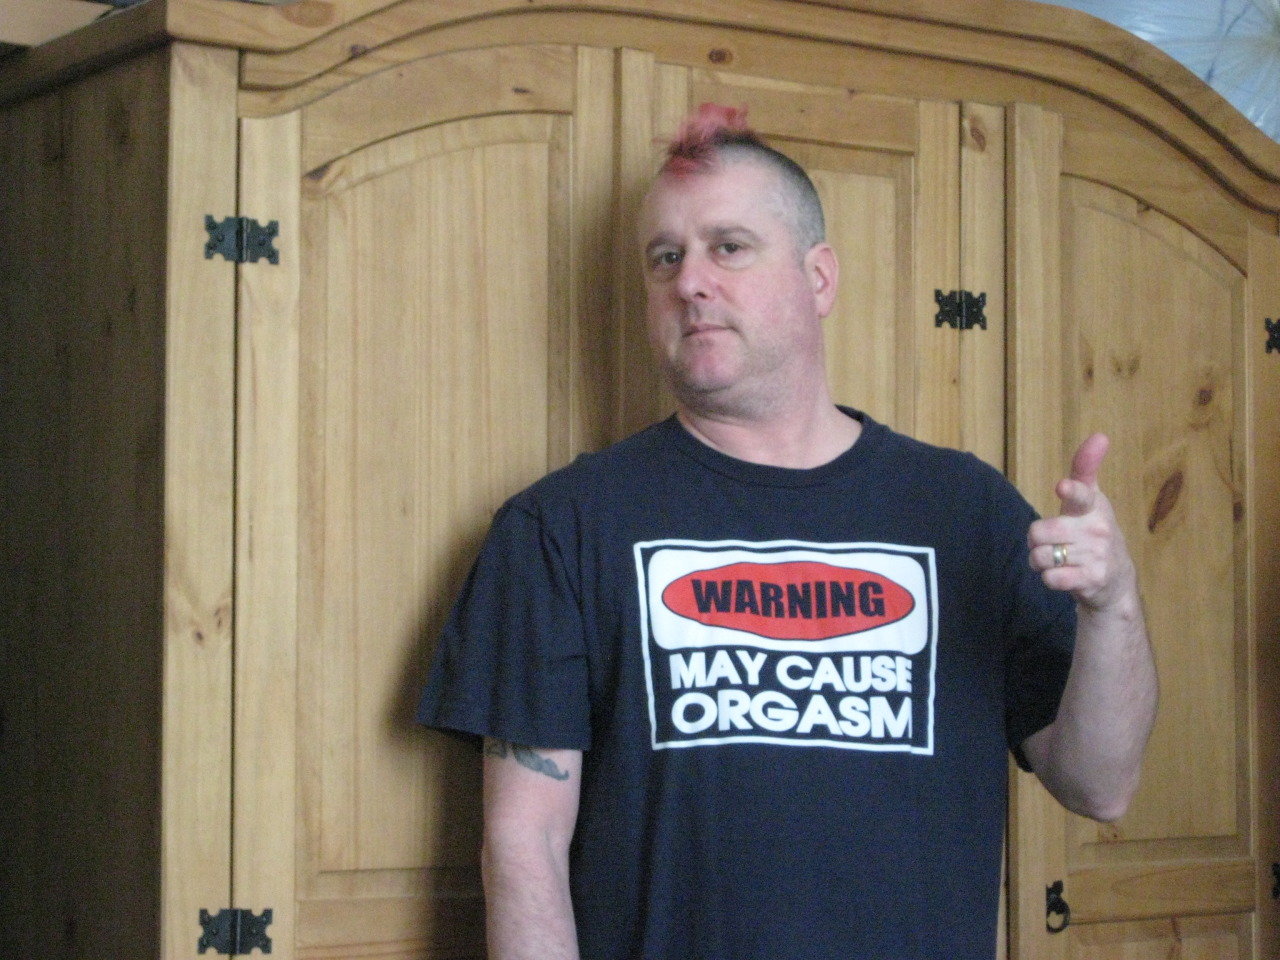 As requested by David Storey, my warning t-shirt.